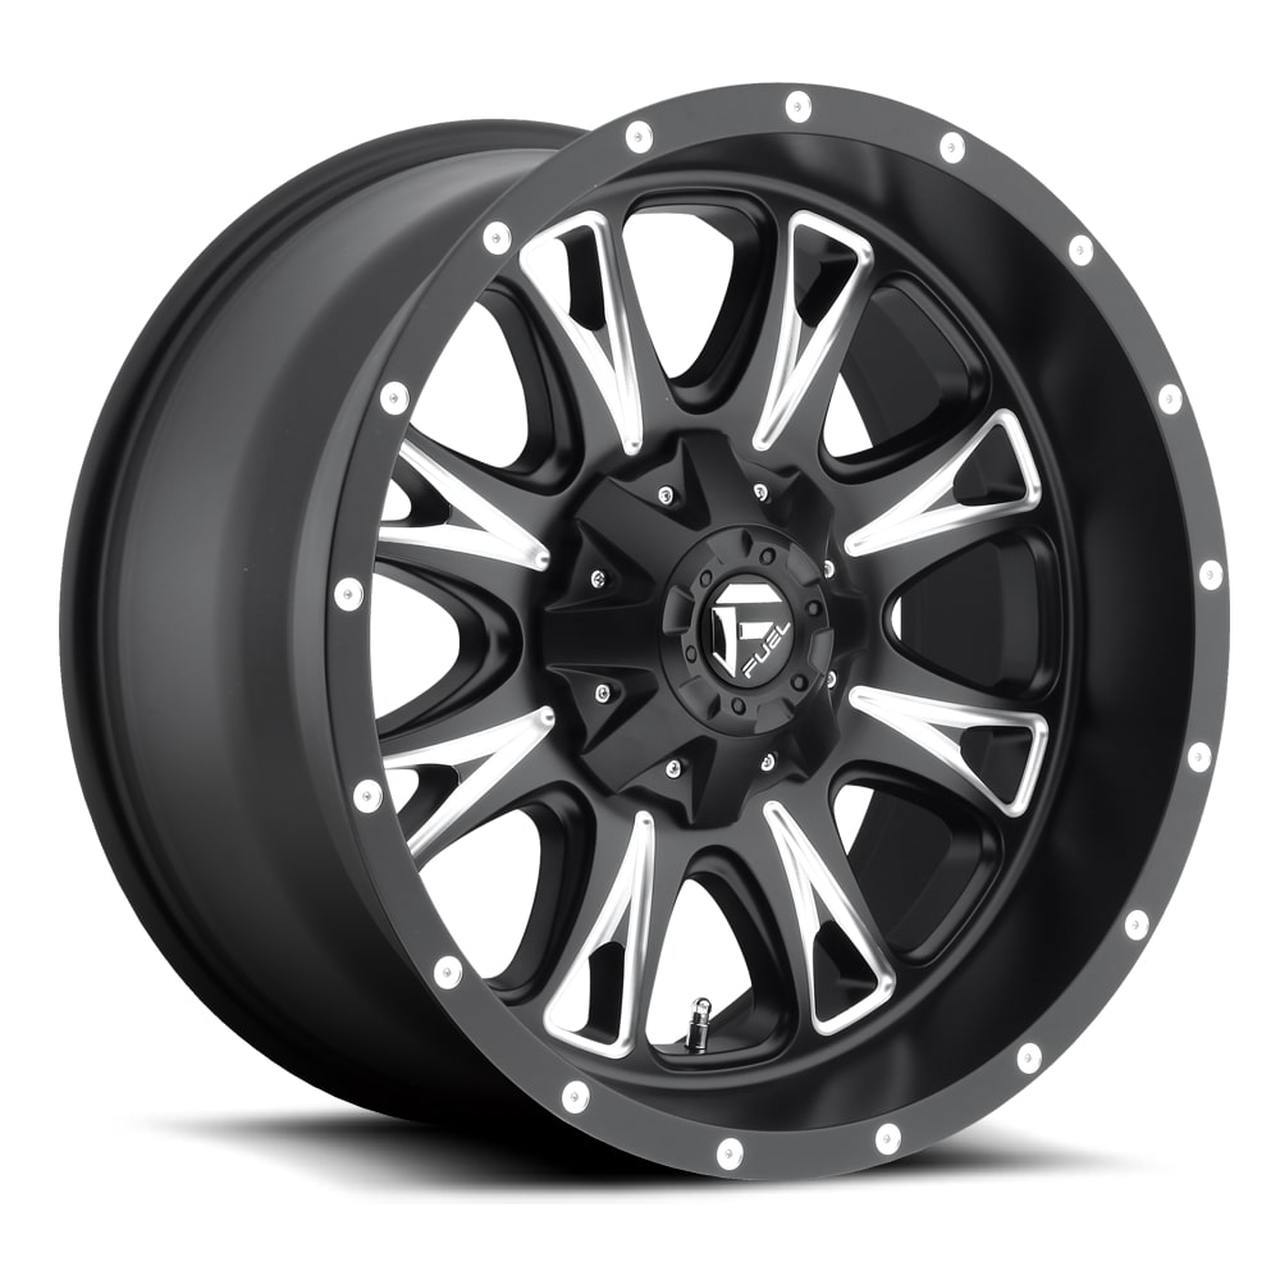 D513 - THROTTLE Matte Black & Milled